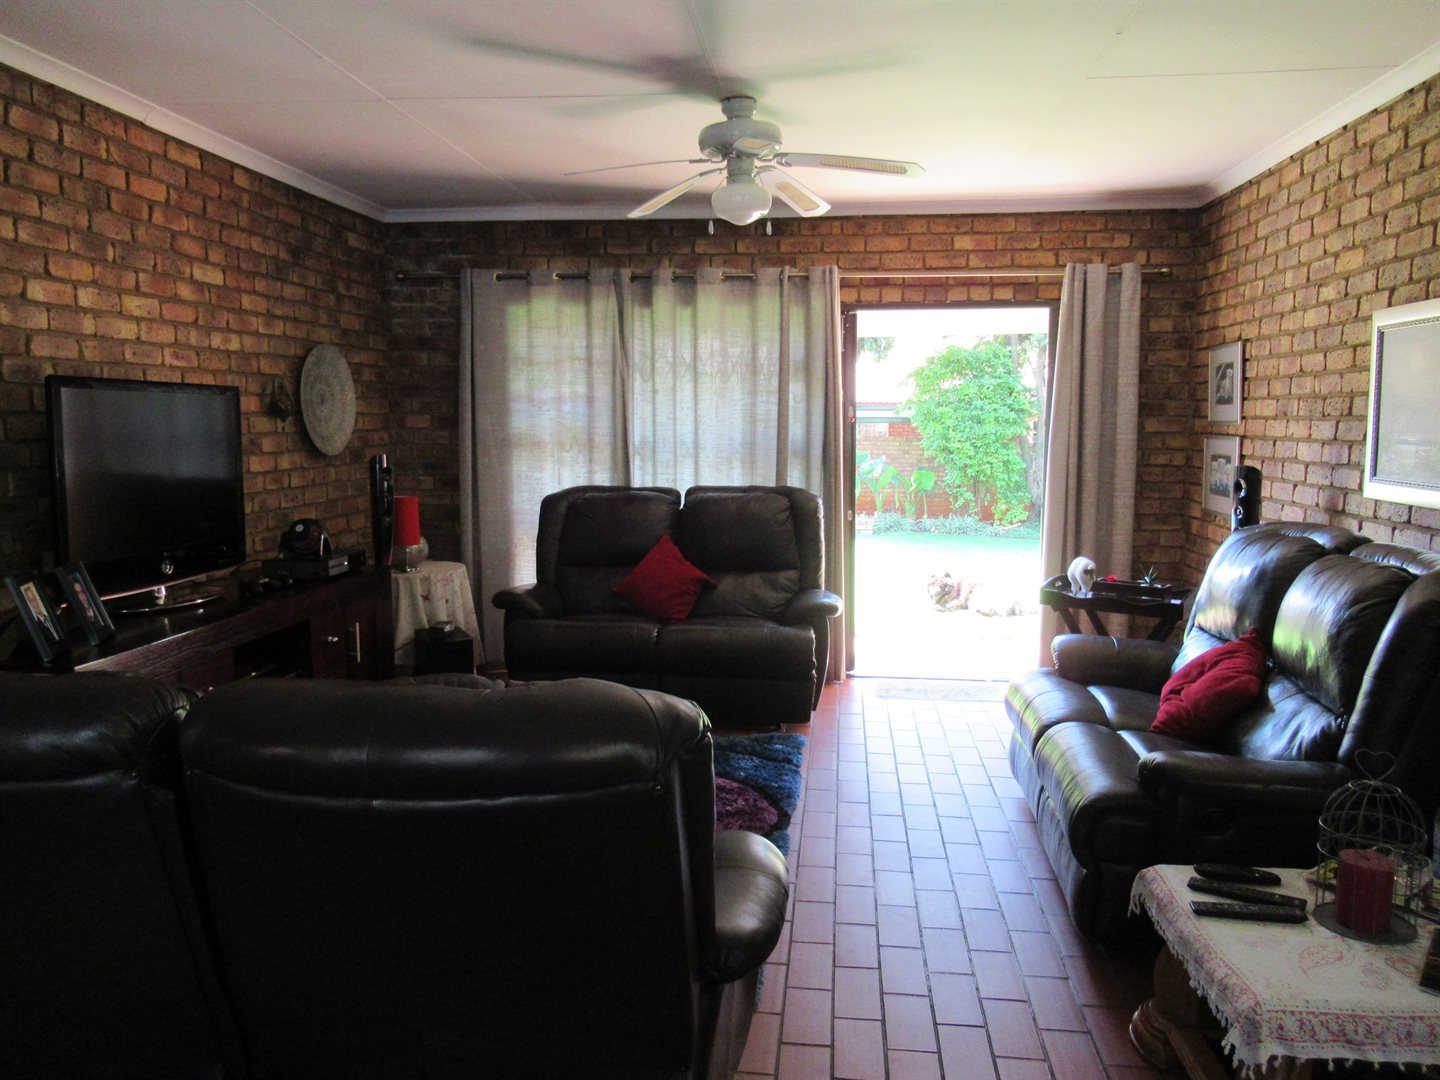 3 Bedroom House for sale in Montana ENT0070945 : photo#26